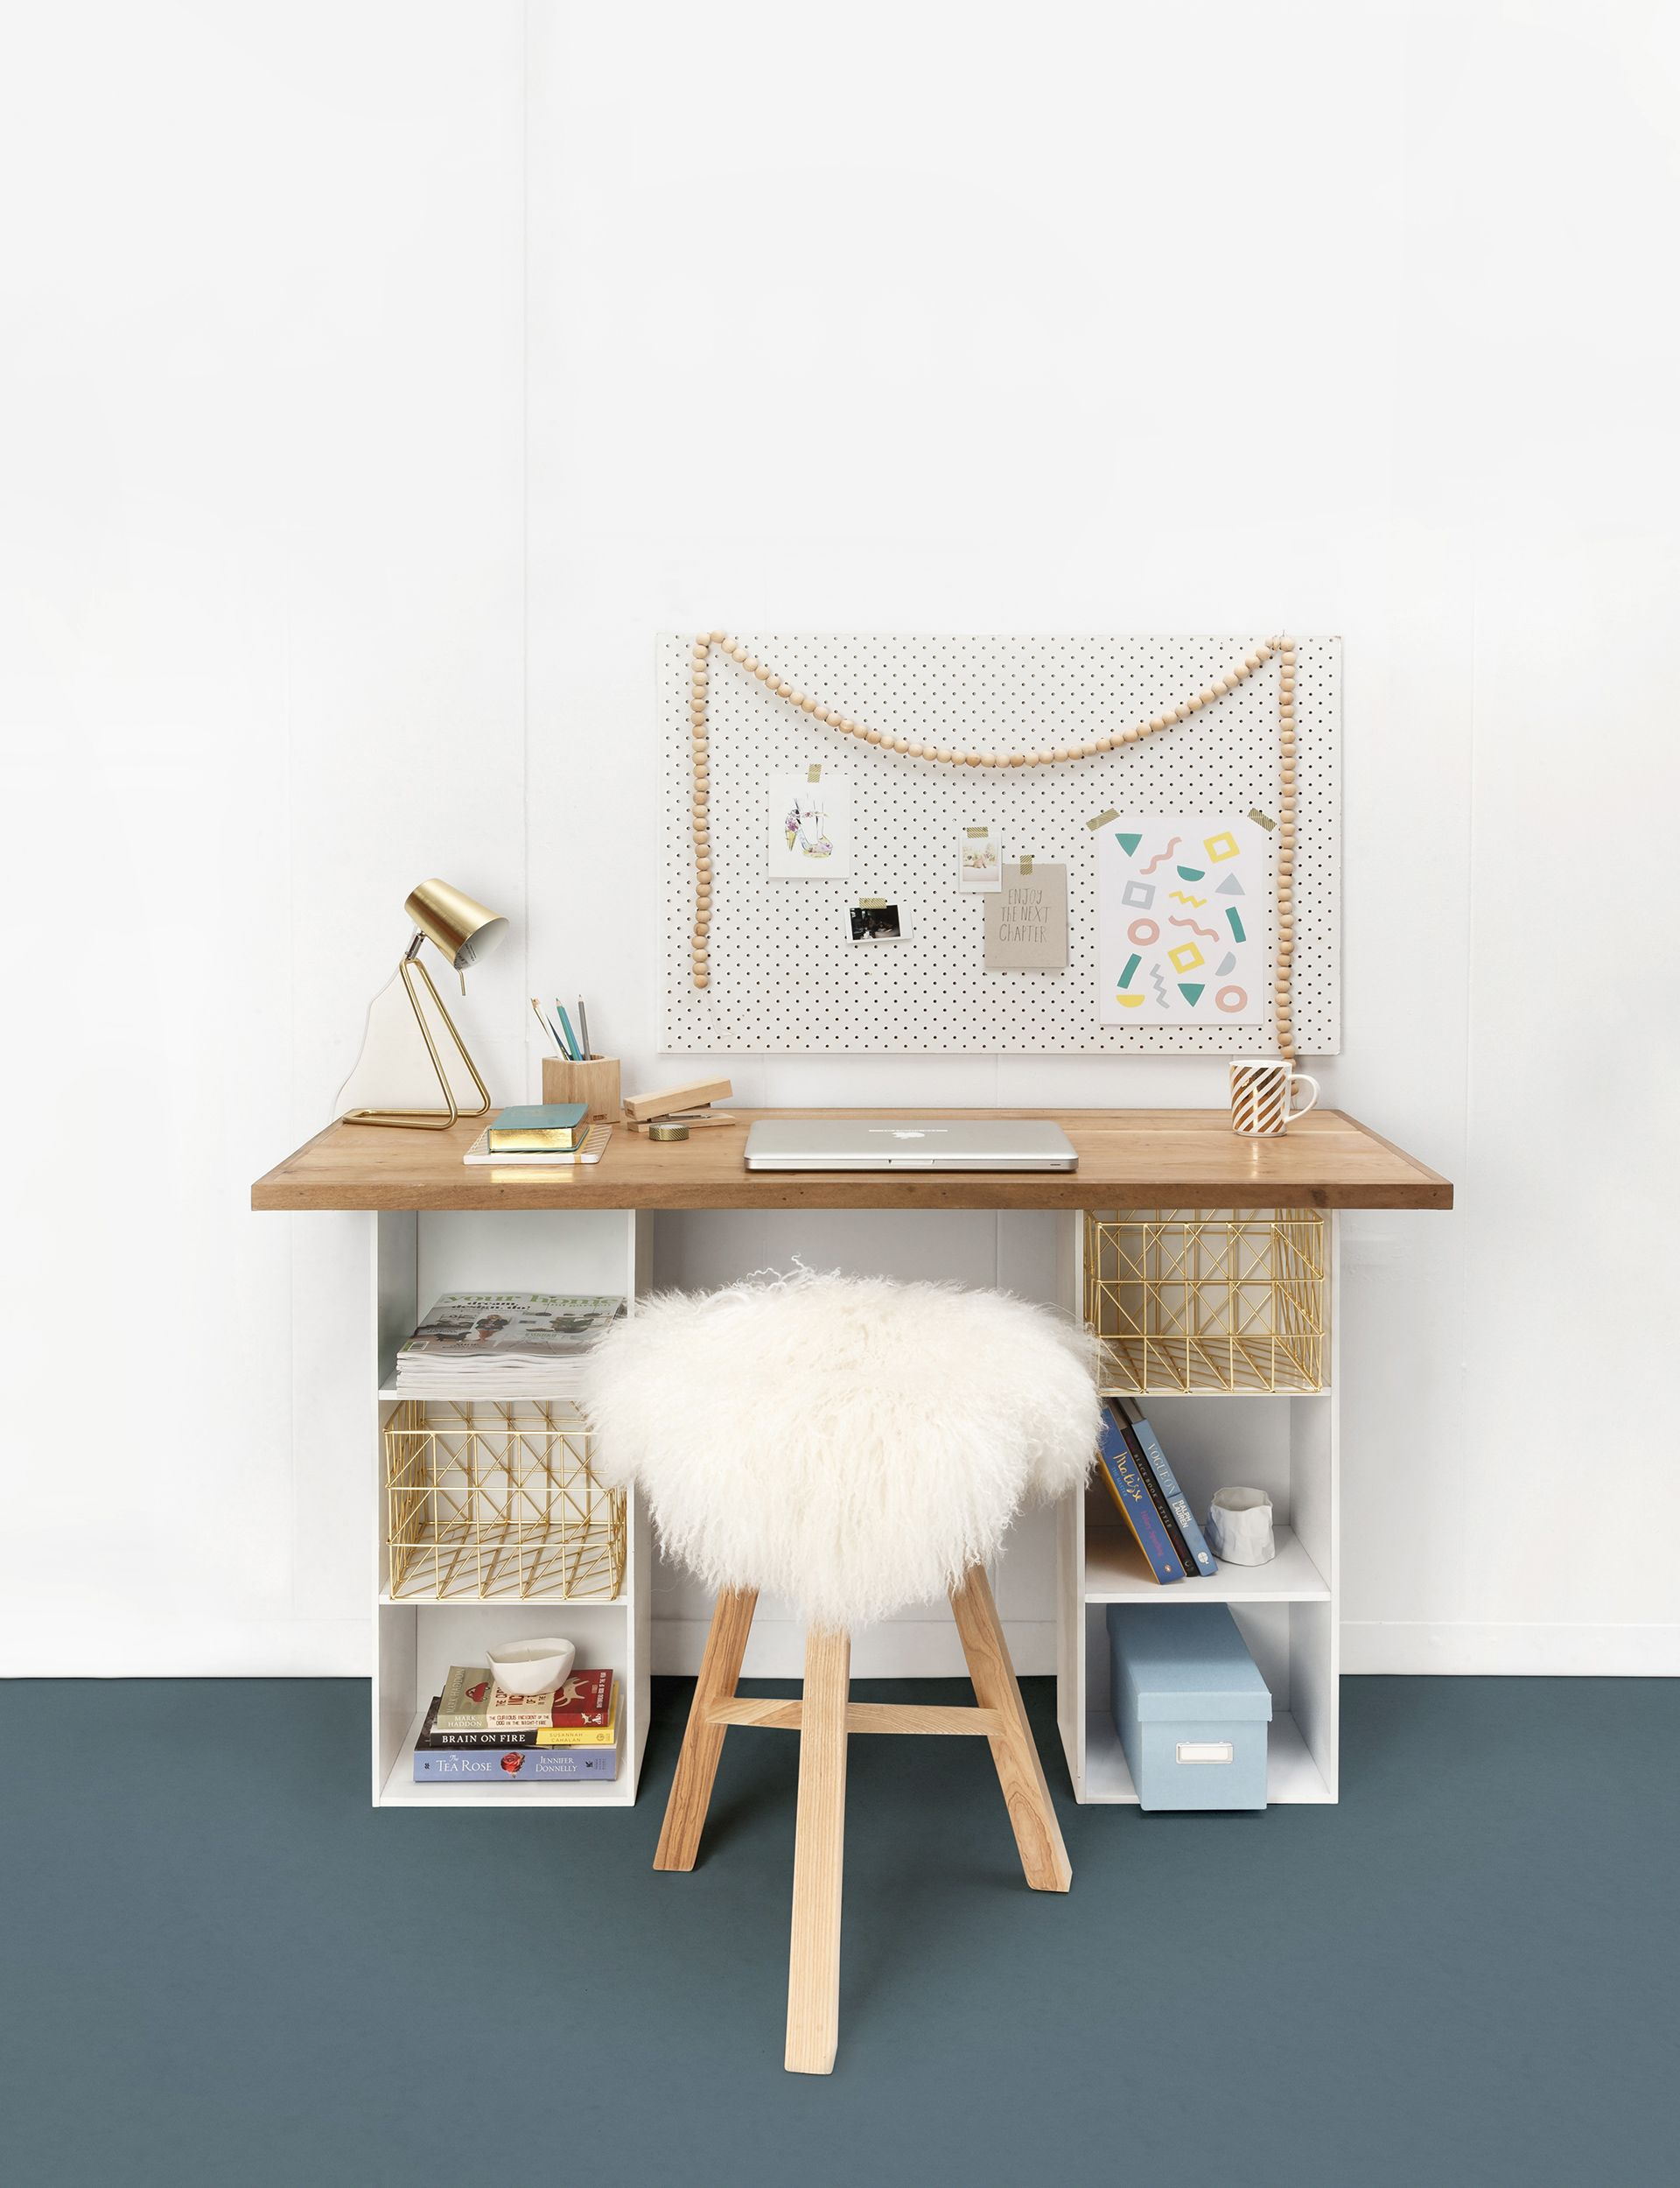 How To Build A Budget Friendly Desk Homes Love Kids Wood Crafts